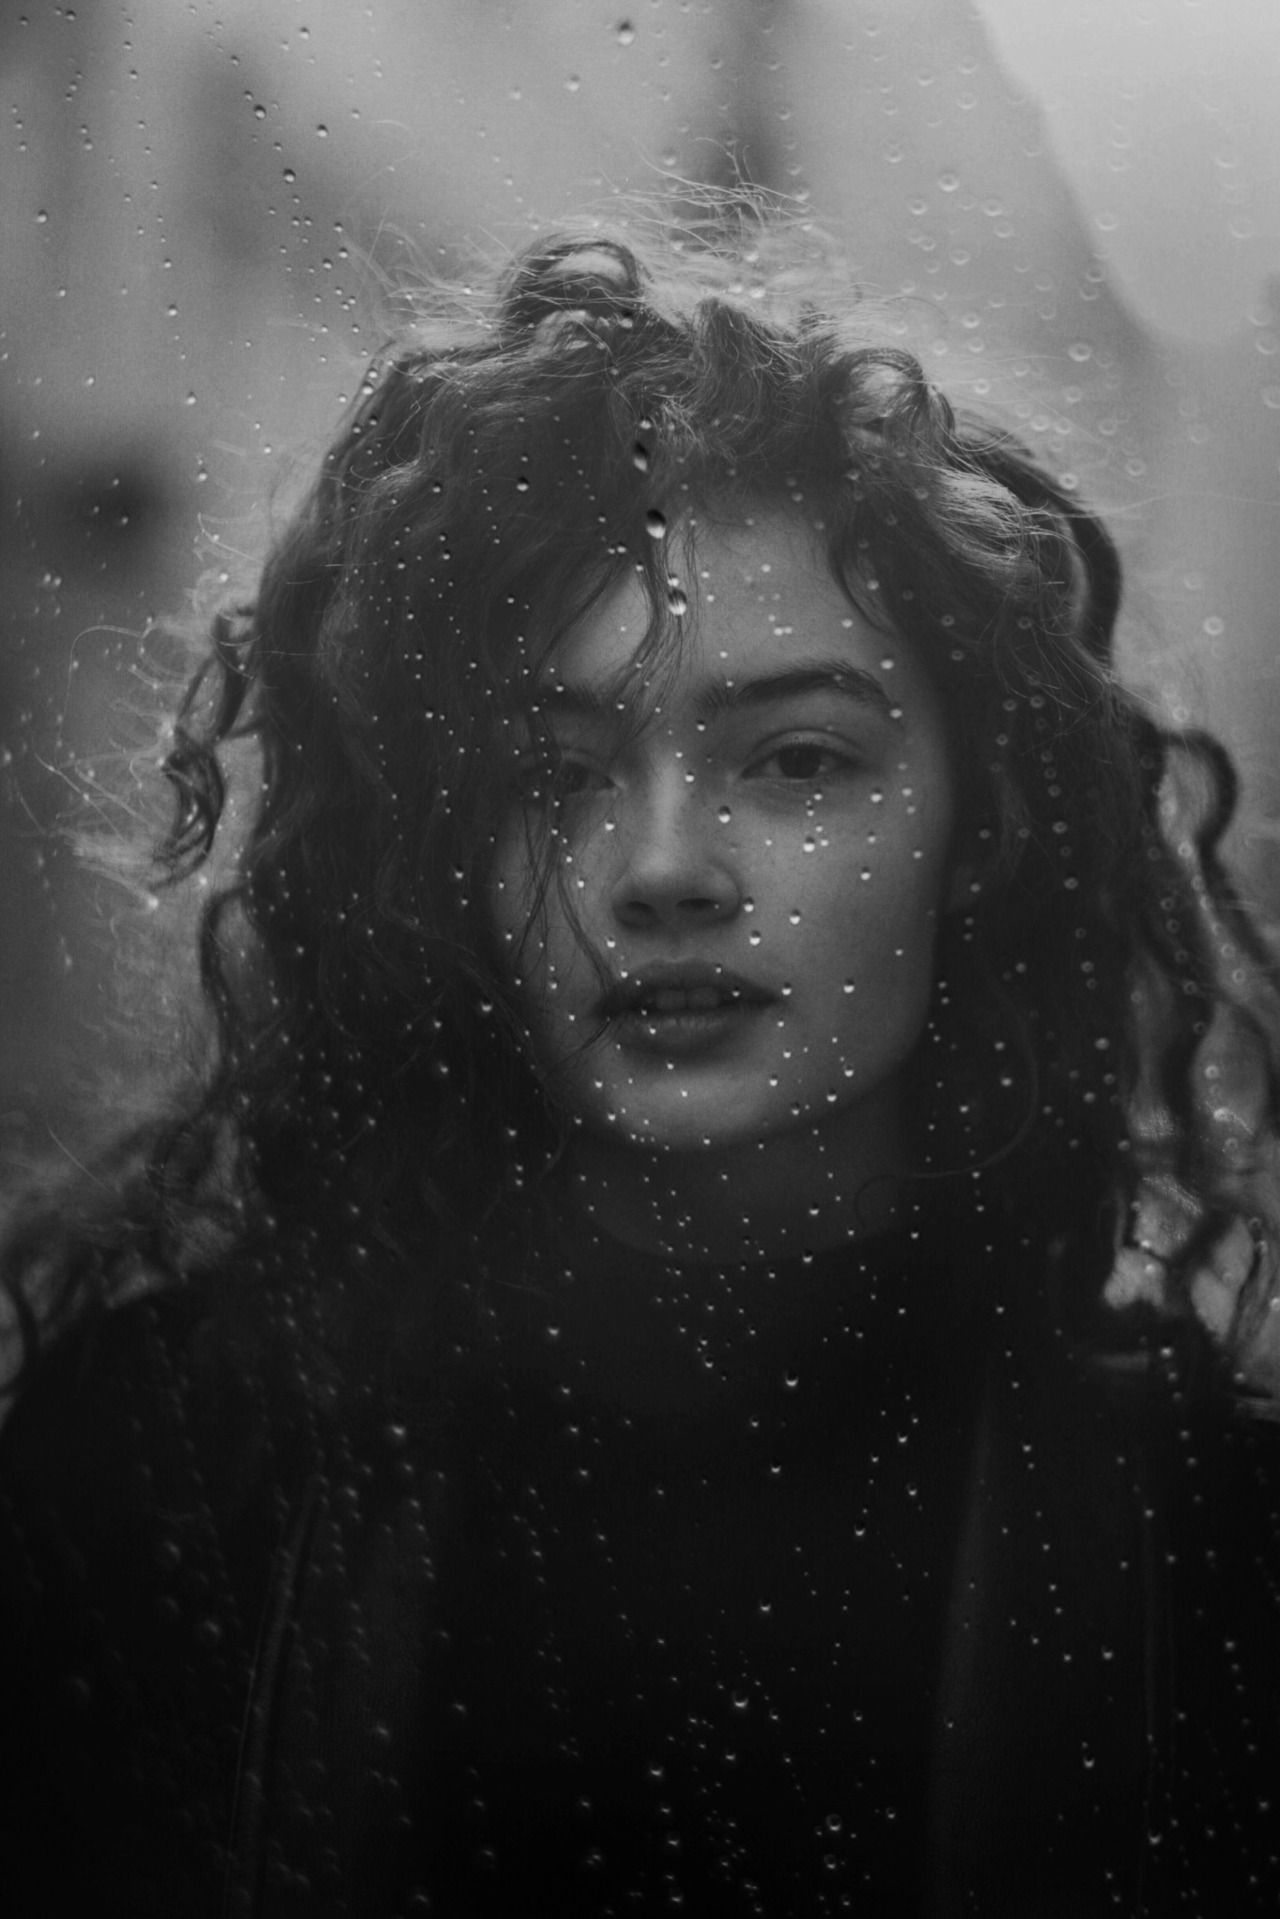 Beautiful rain spattered black and white portrait from one of my favorite nyc photographers